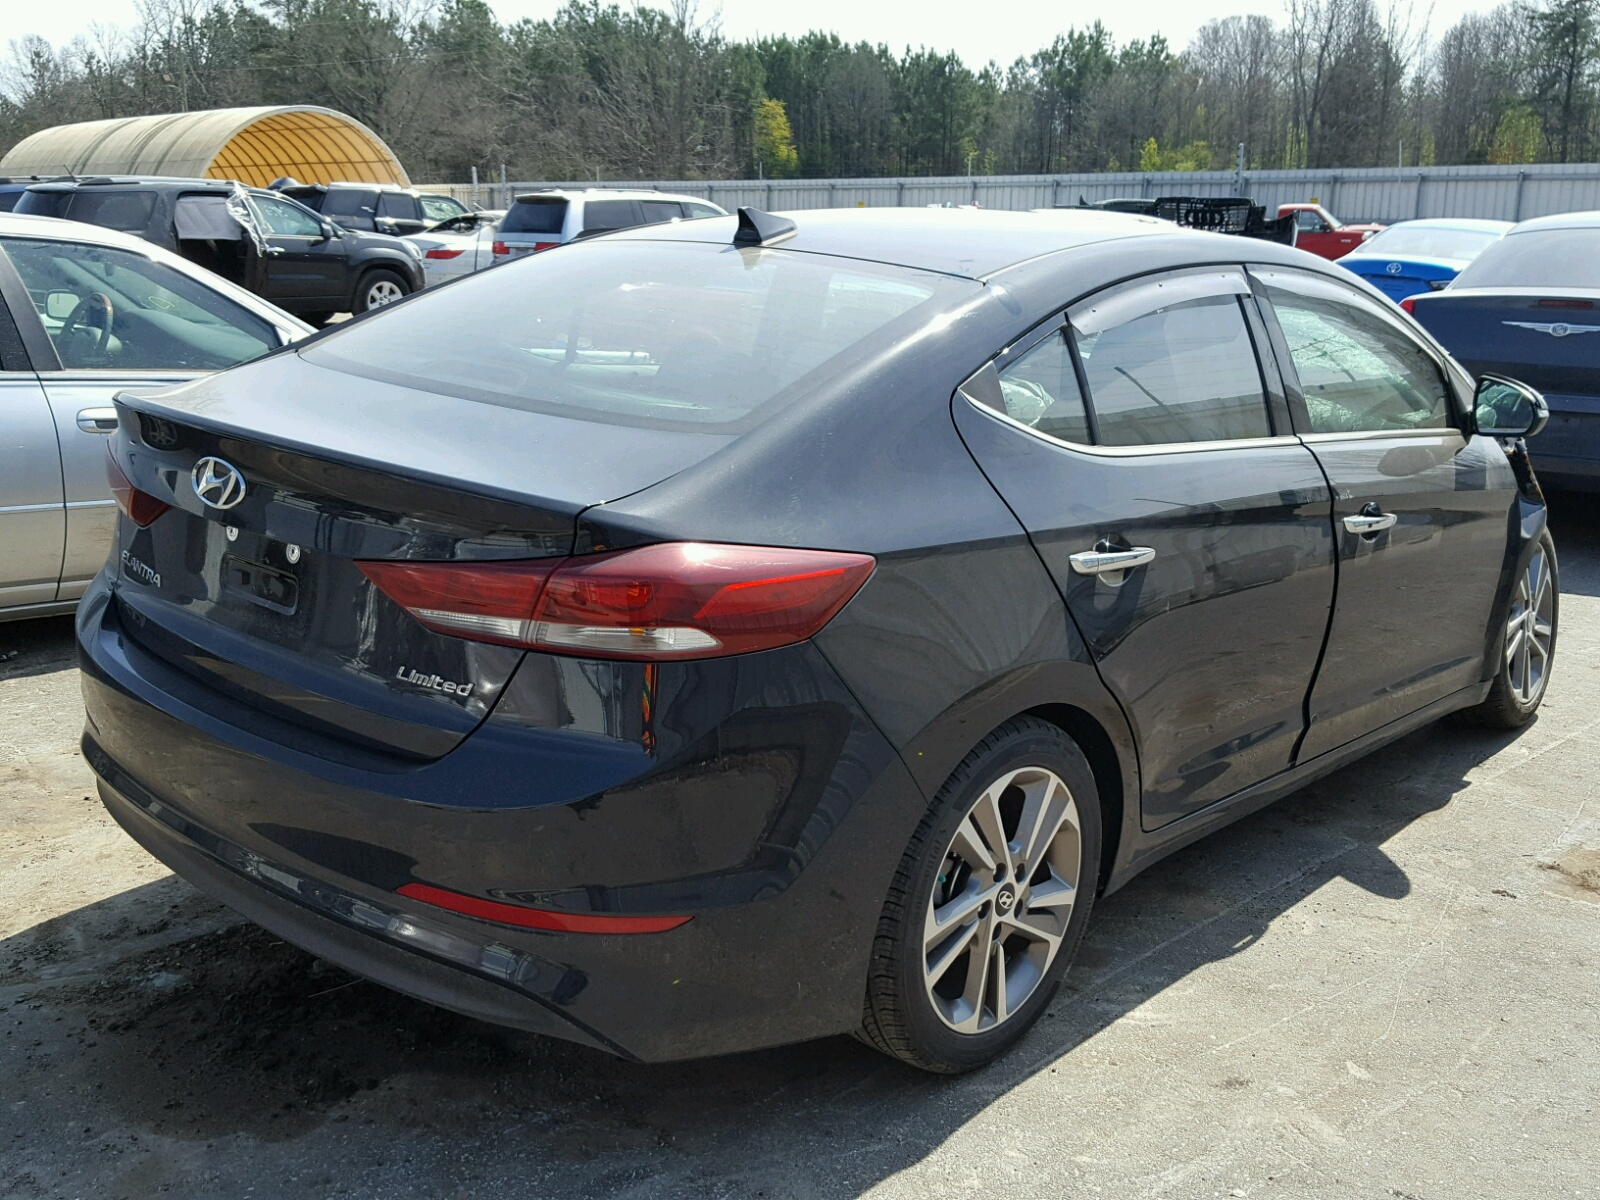 black of online title carfinder se view cert greer on sc in copart sale hyundai auctions lot elantra auto salvage right en